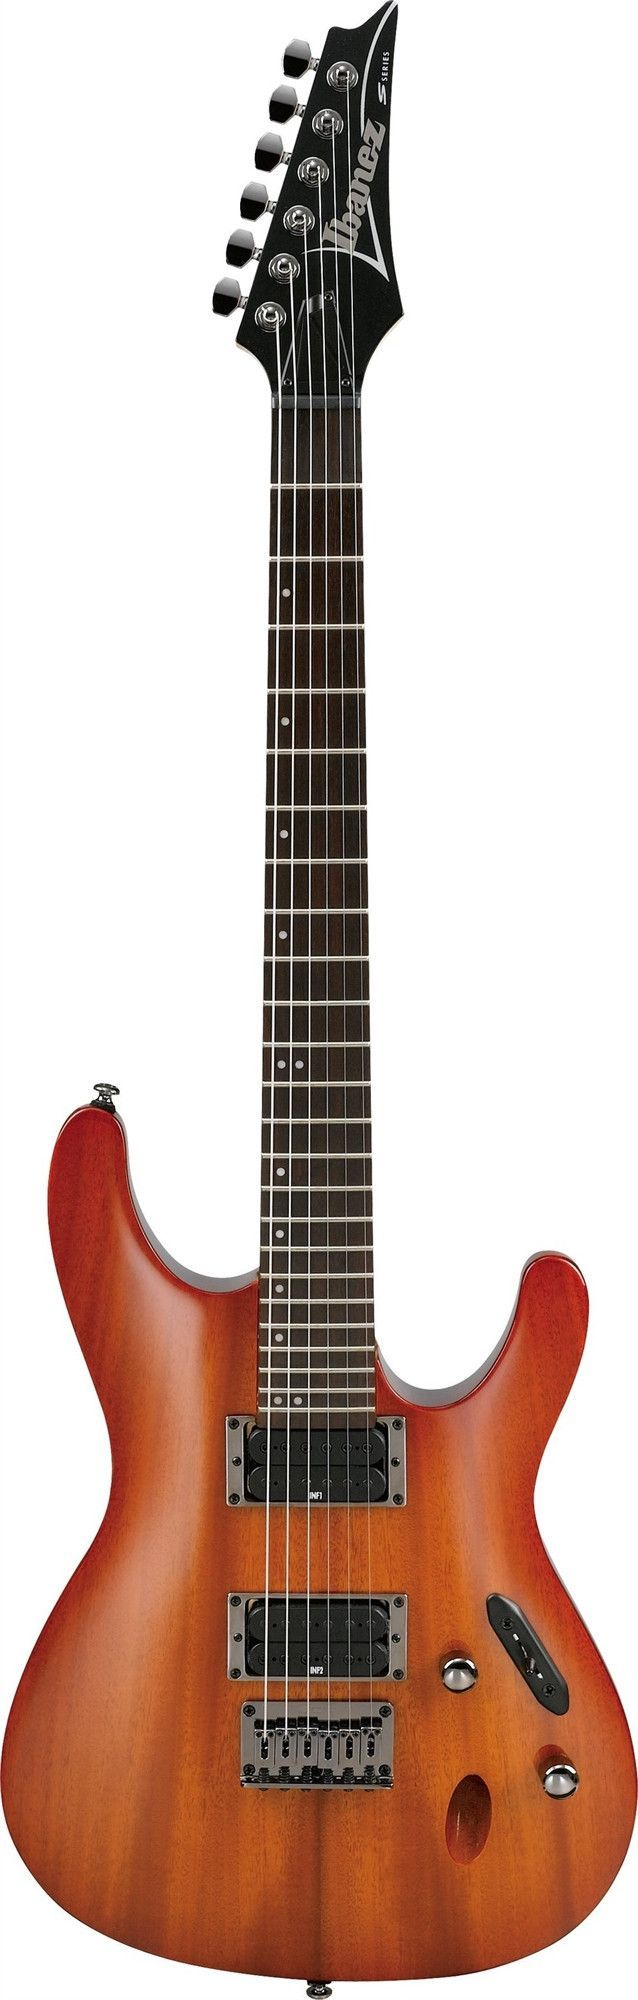 Ibanez S521 S-Series Electric Guitar